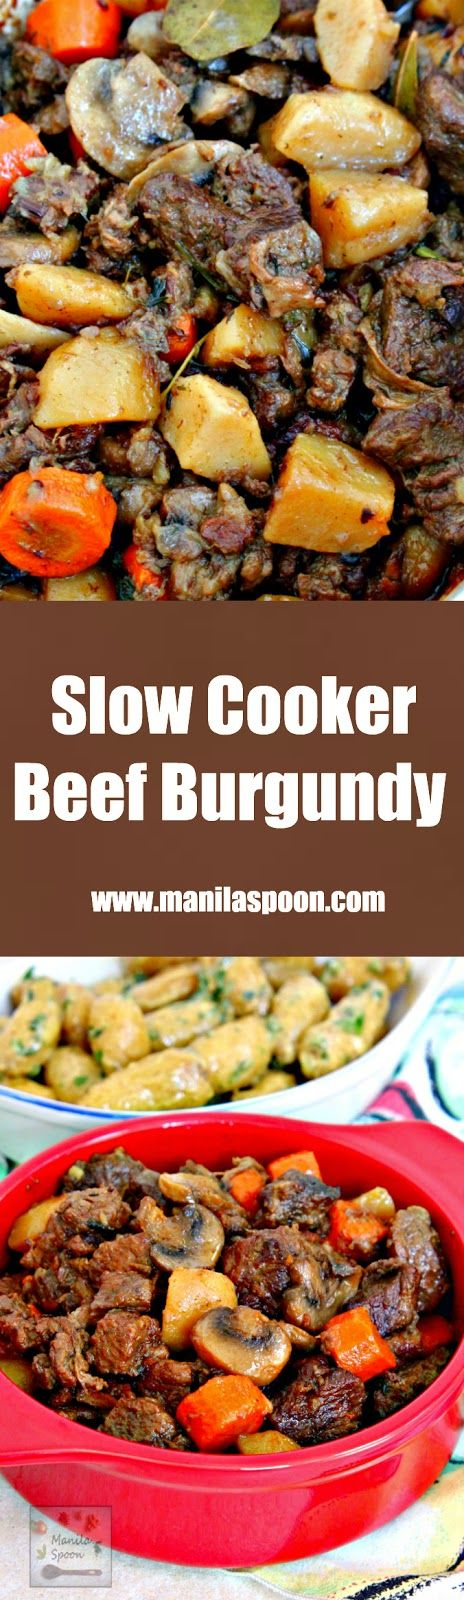 Beef chunks are simmered in red wine in the slow cooker and results in a melt-in-your-mouth delicious stew! Make this crockpot version of the classic French stew - Beef Burgundy (Boeuf Bourguignon) in the morning and enjoy it for dinner.   manilaspoon.com